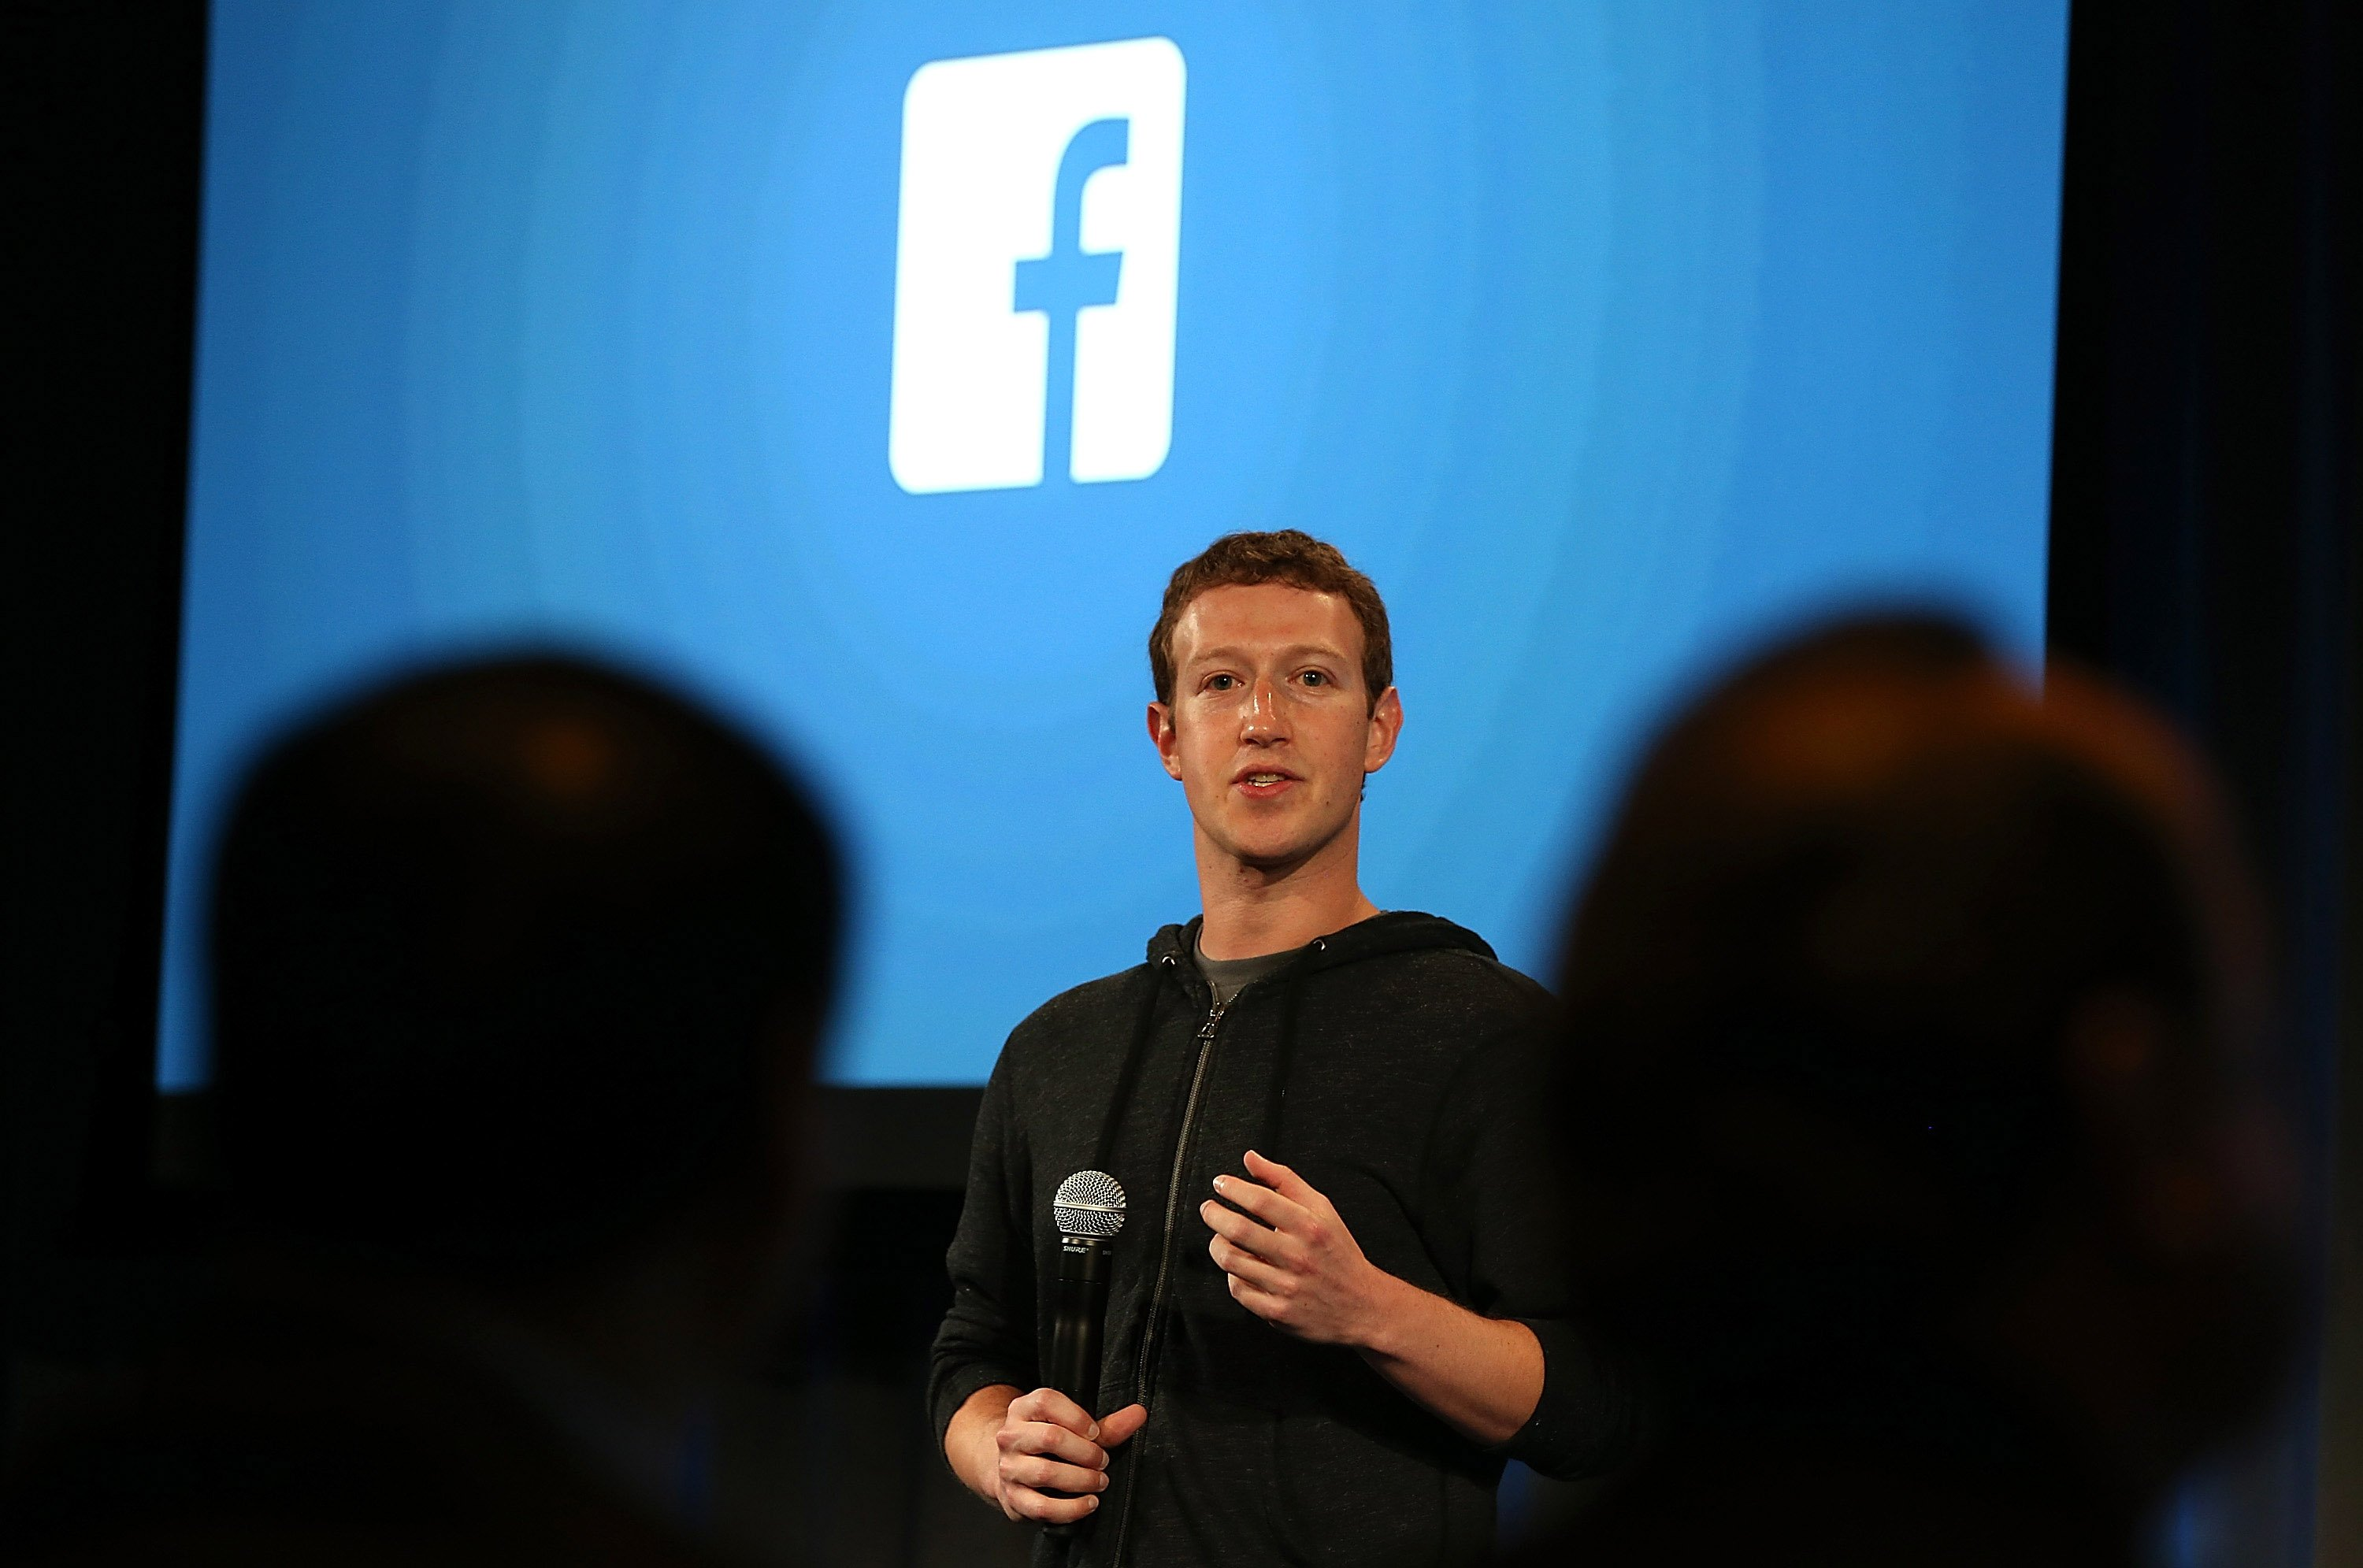 Facebook CEO Mark Zuckerberg speaks during an event at Facebook headquarters on April 4, 2013 in Menlo Park, California